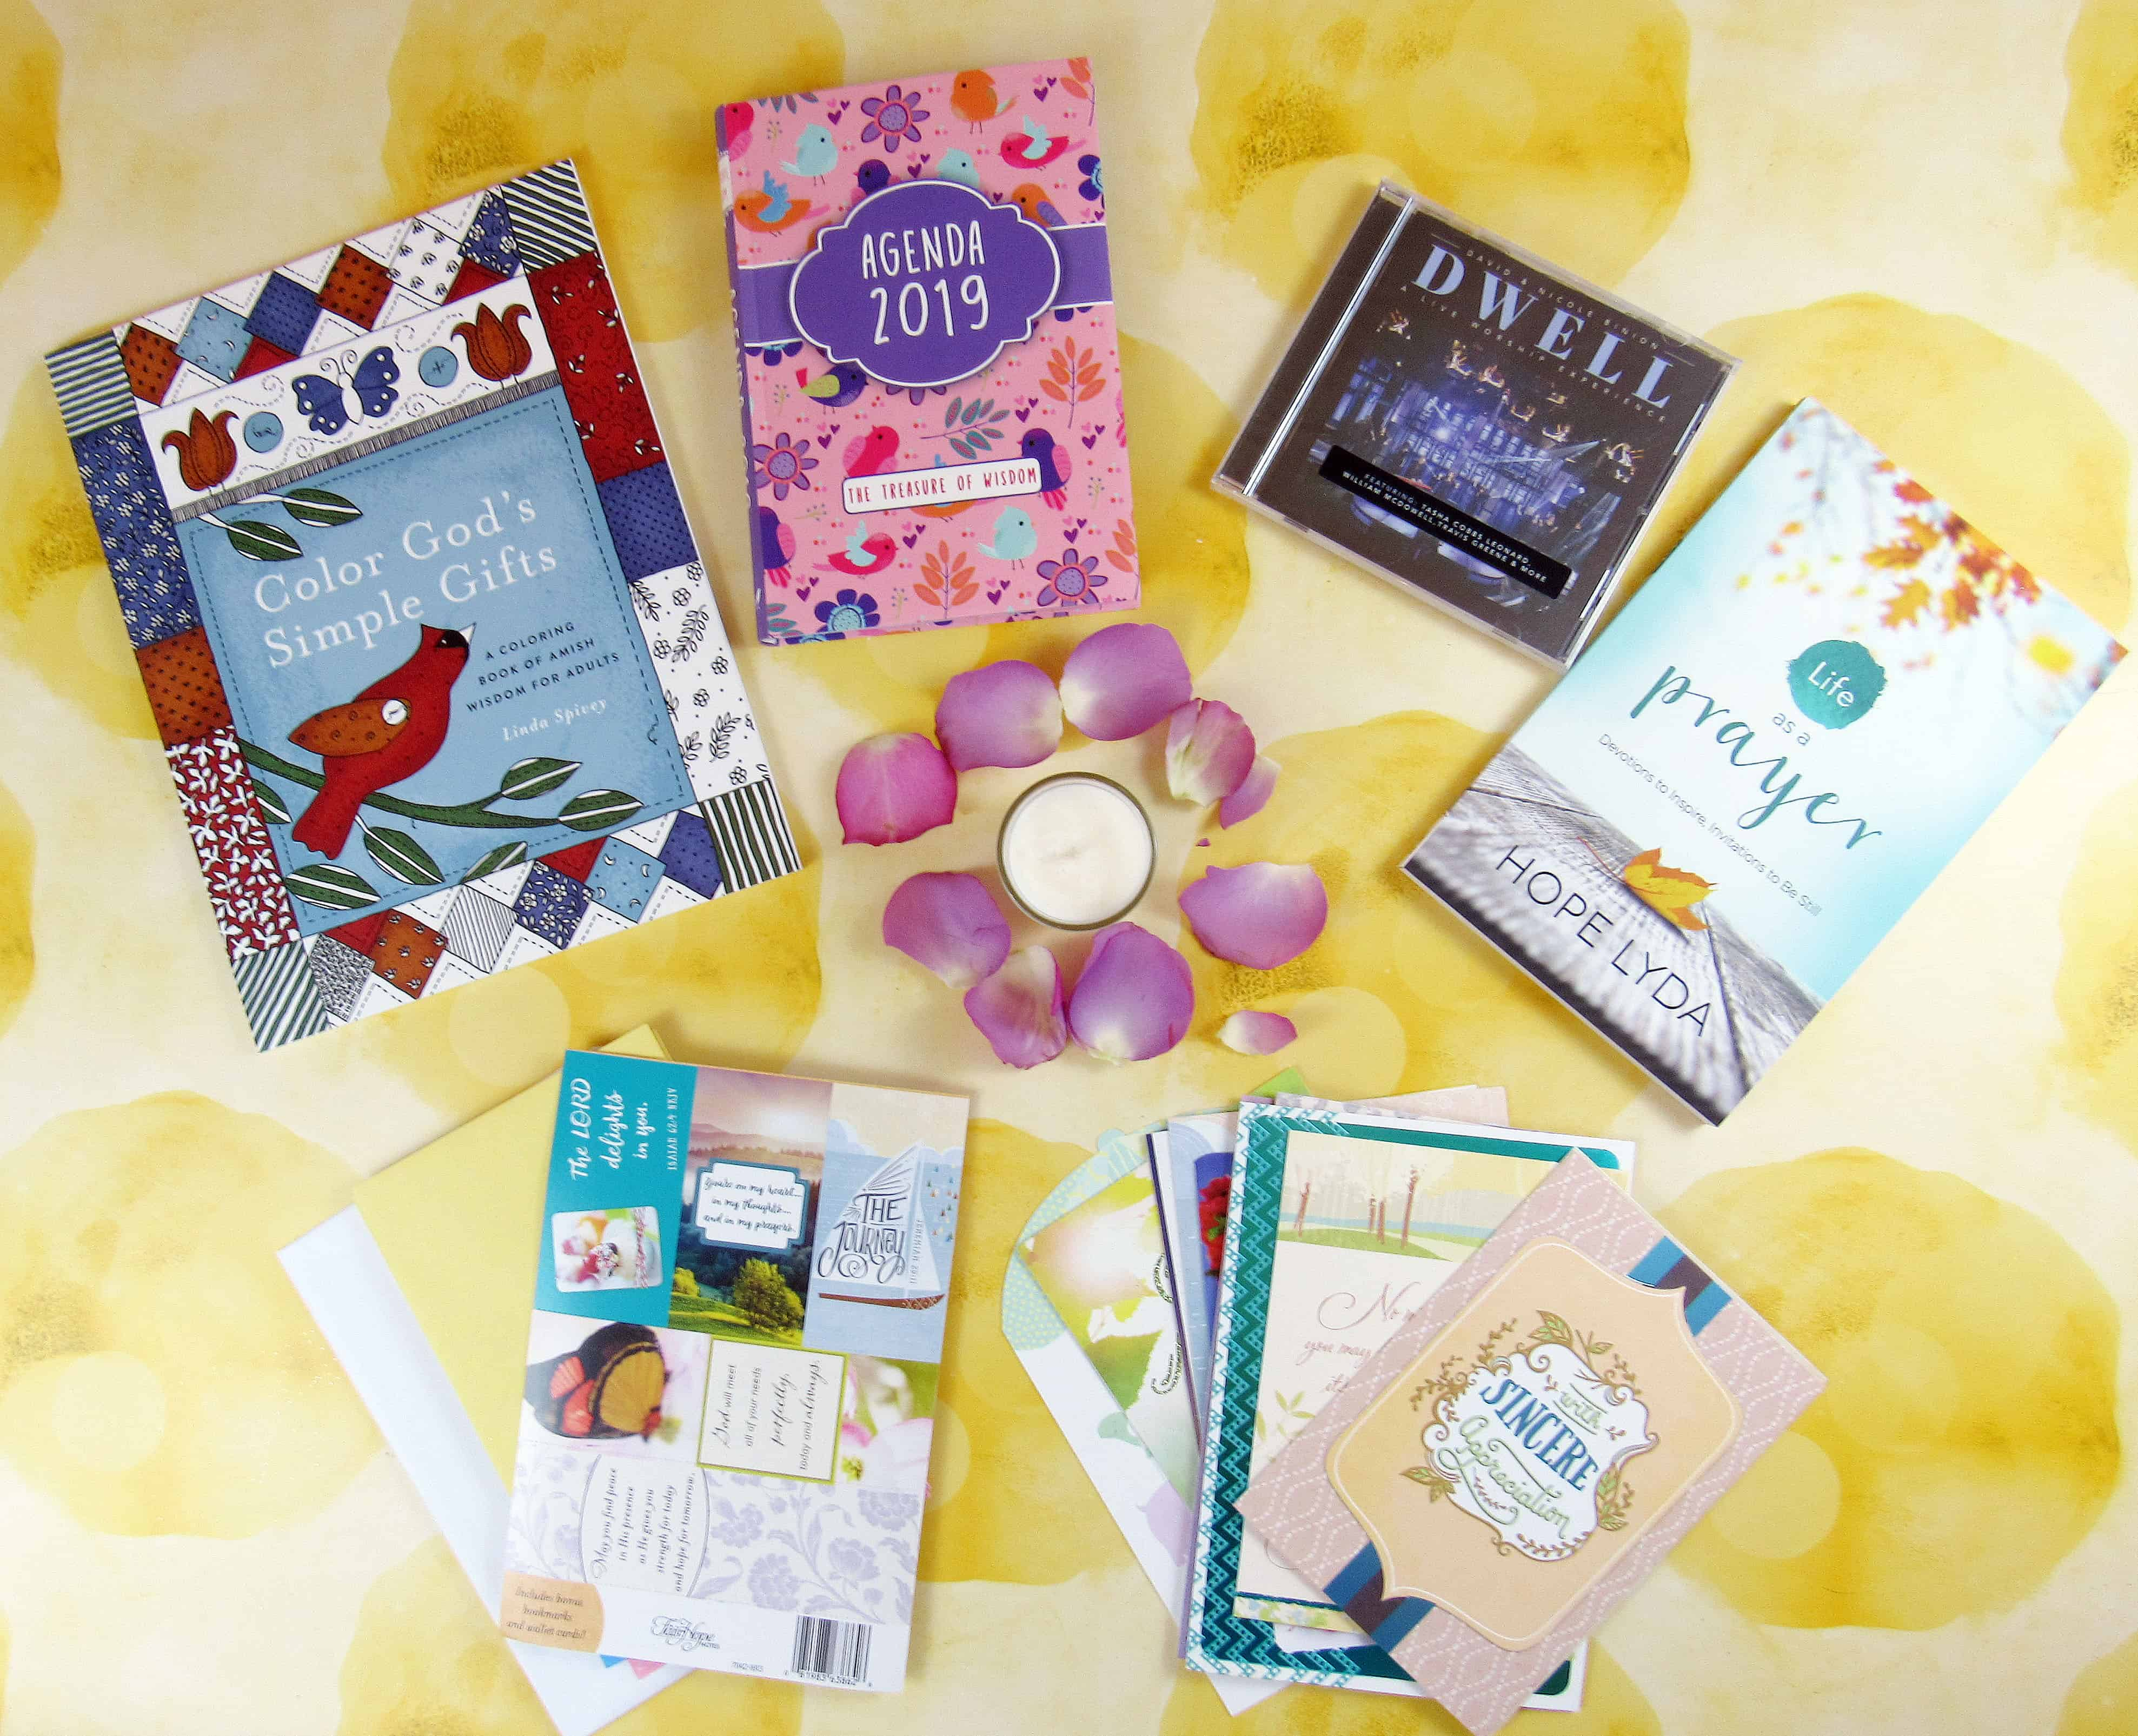 Bette's Box of Blessings Cyber Monday Deal: Get $5 off your first month's box!